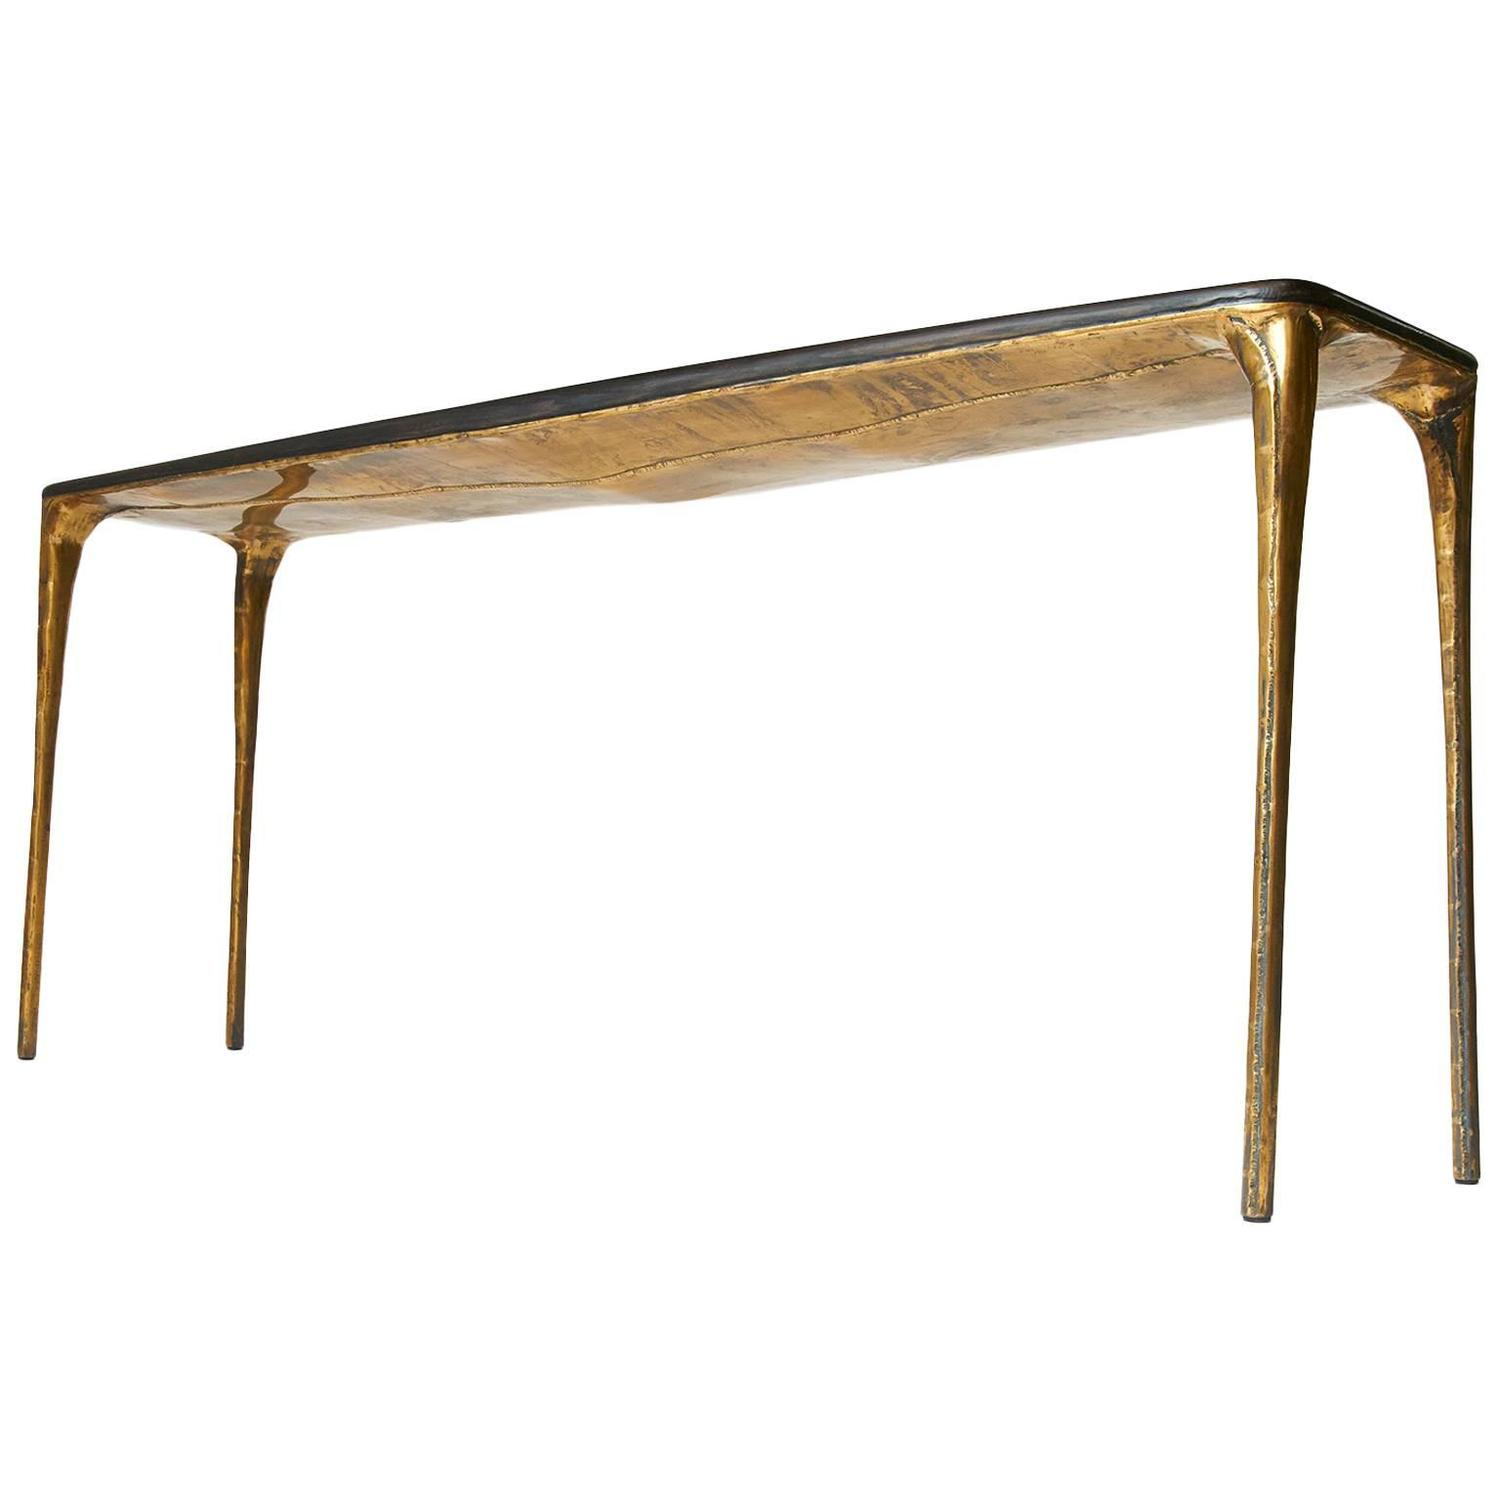 1st Dibs 1st dibs 10 Incredible Modern Console Tables on 1st Dibs 4505433 z